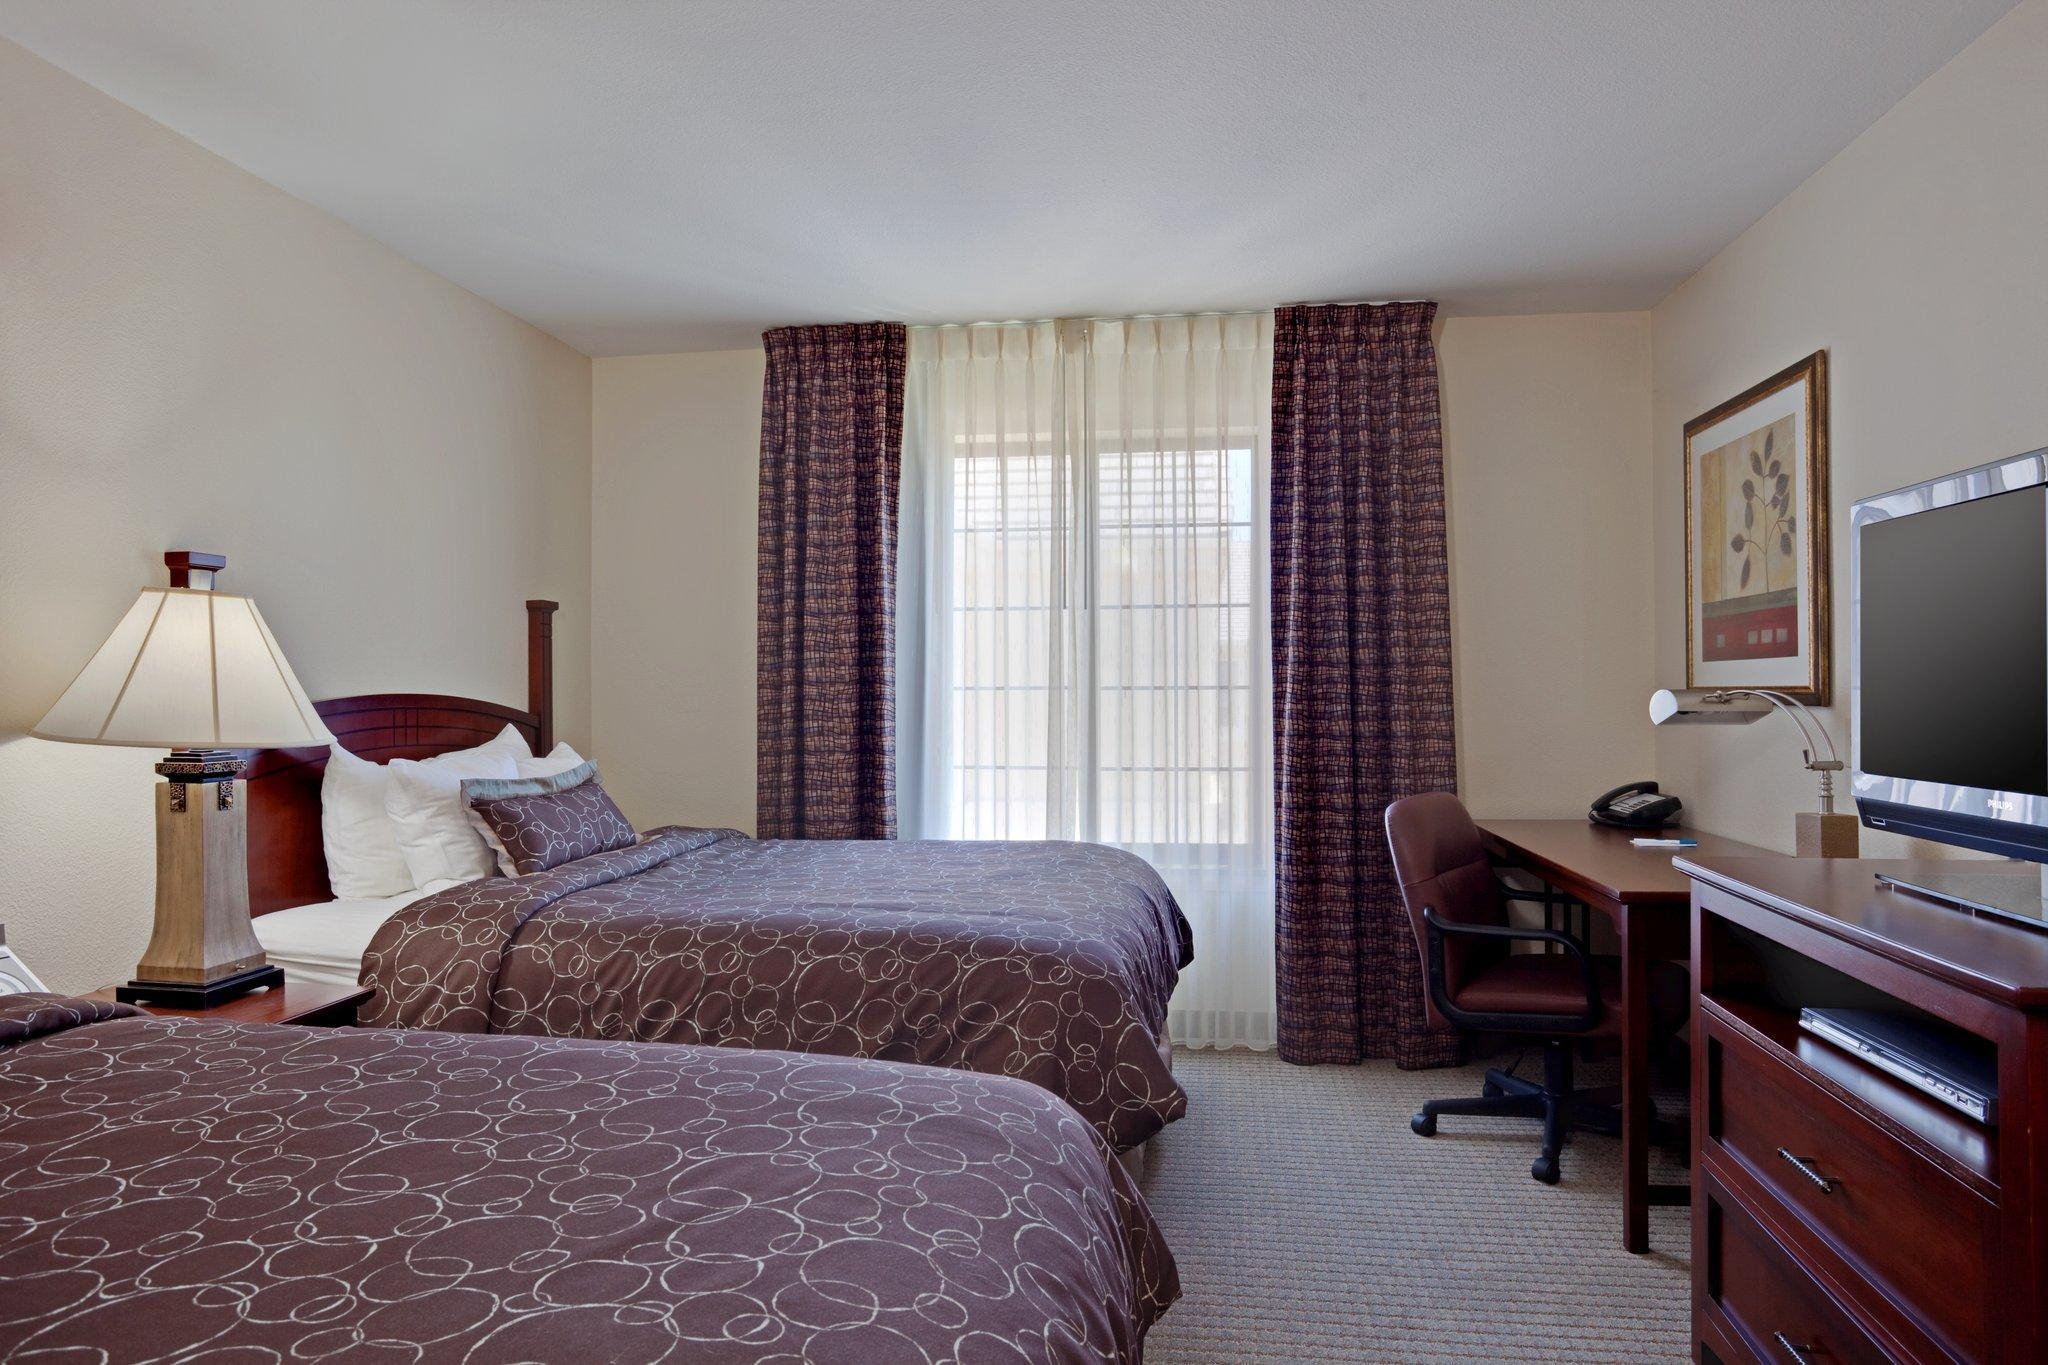 2 Bed Suite 1 King Bed 2 Queen Beds Non-Smoking